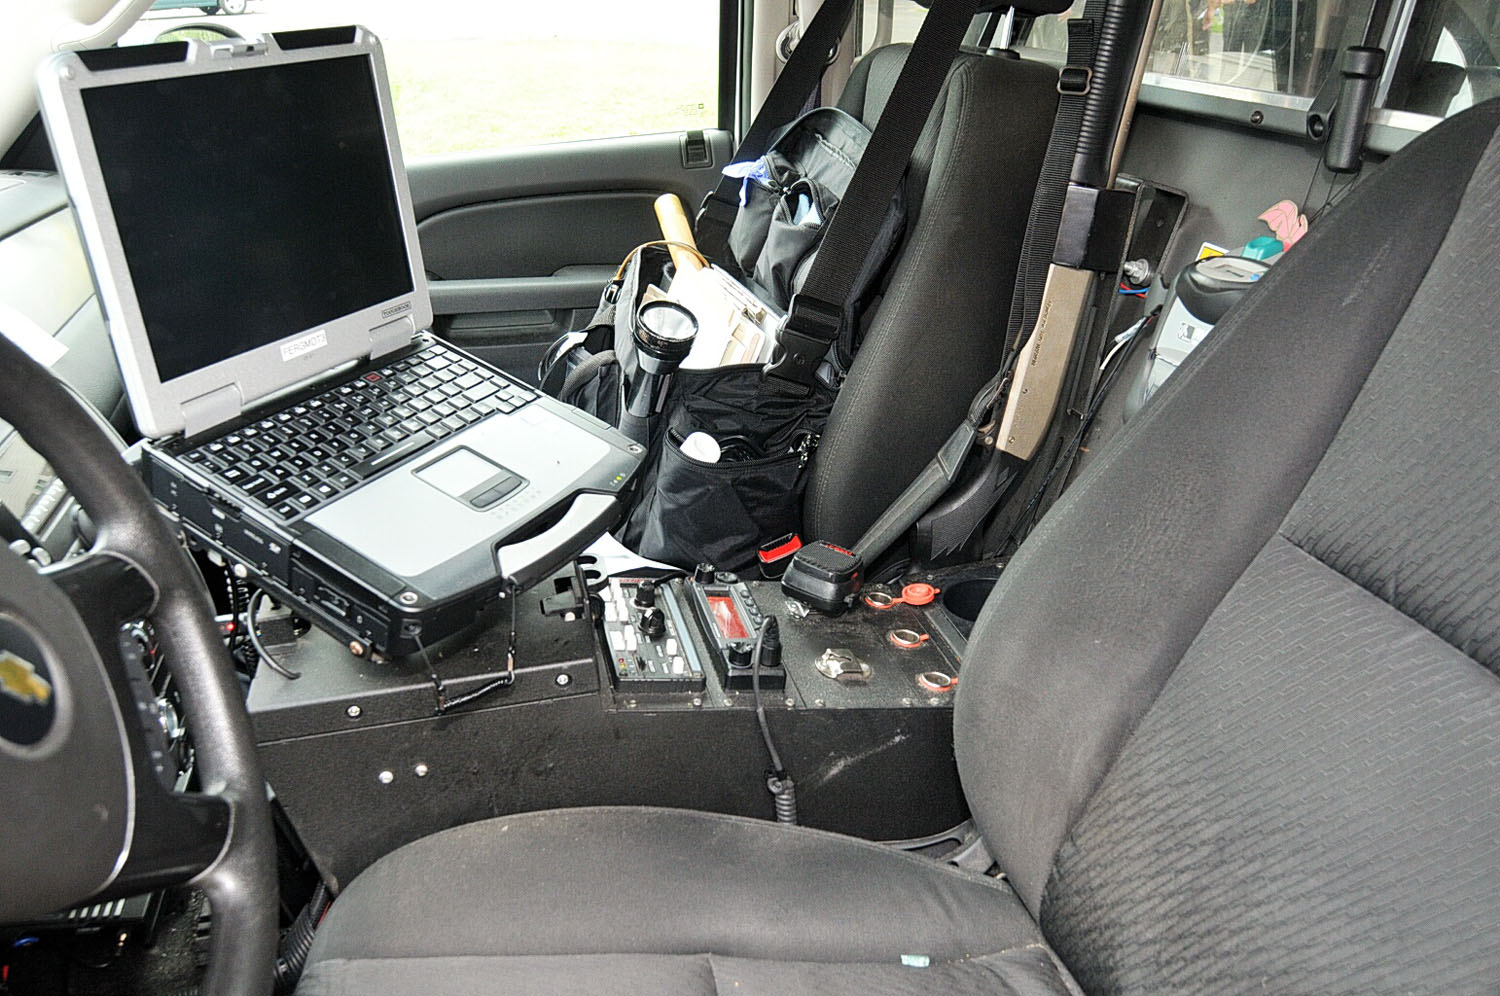 The interior of Officer Wilson's police vehicle. Wilson says he used the radio to call for backup after the shooting